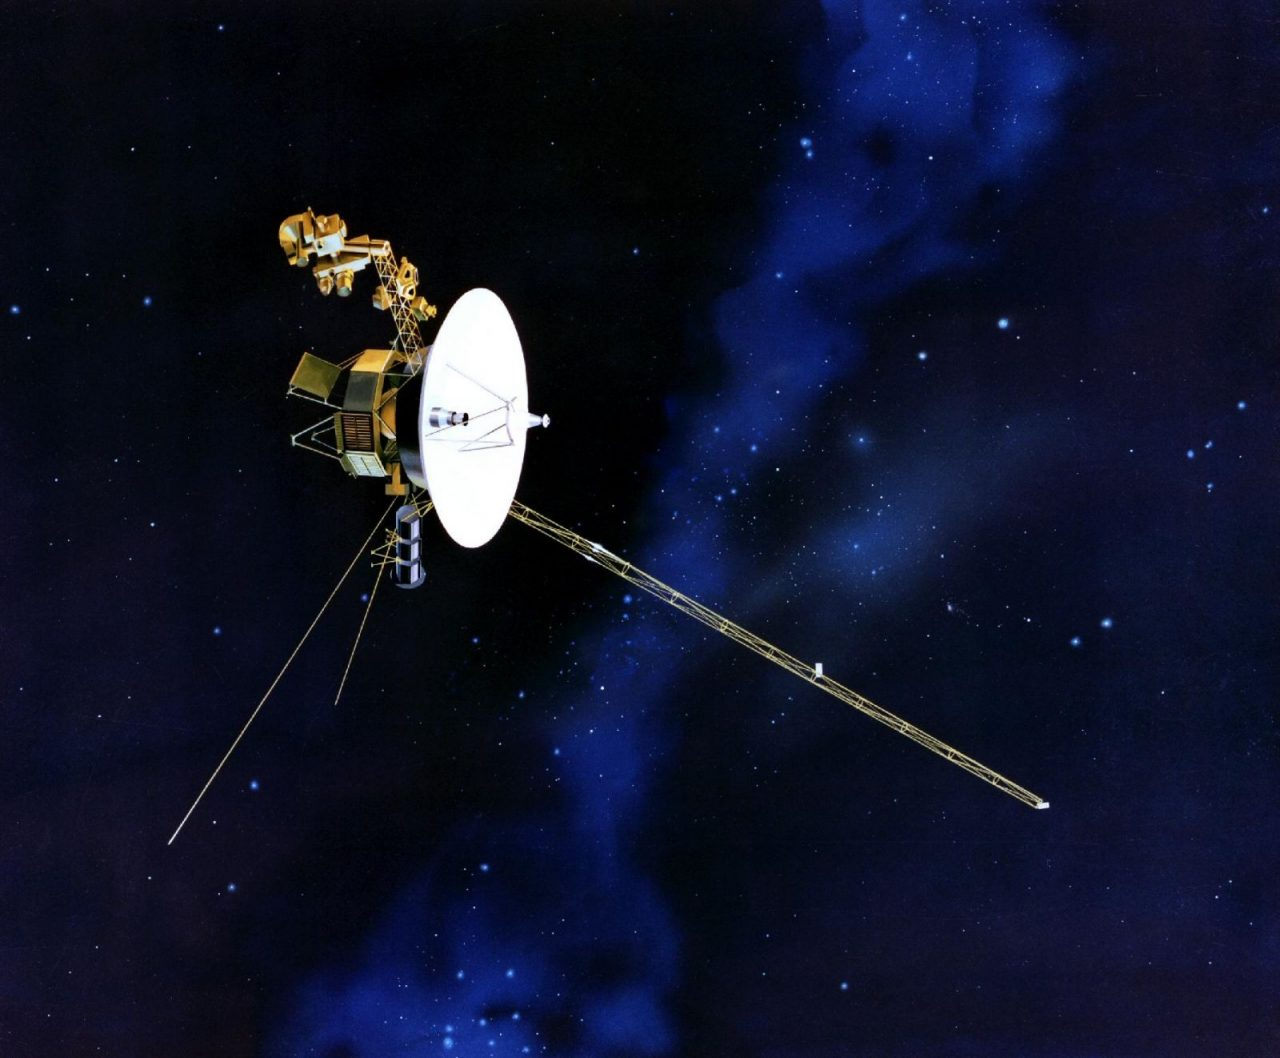 Uranus flyby: Artist's concept of the Voyager spacecraft. Image Credit: NASA